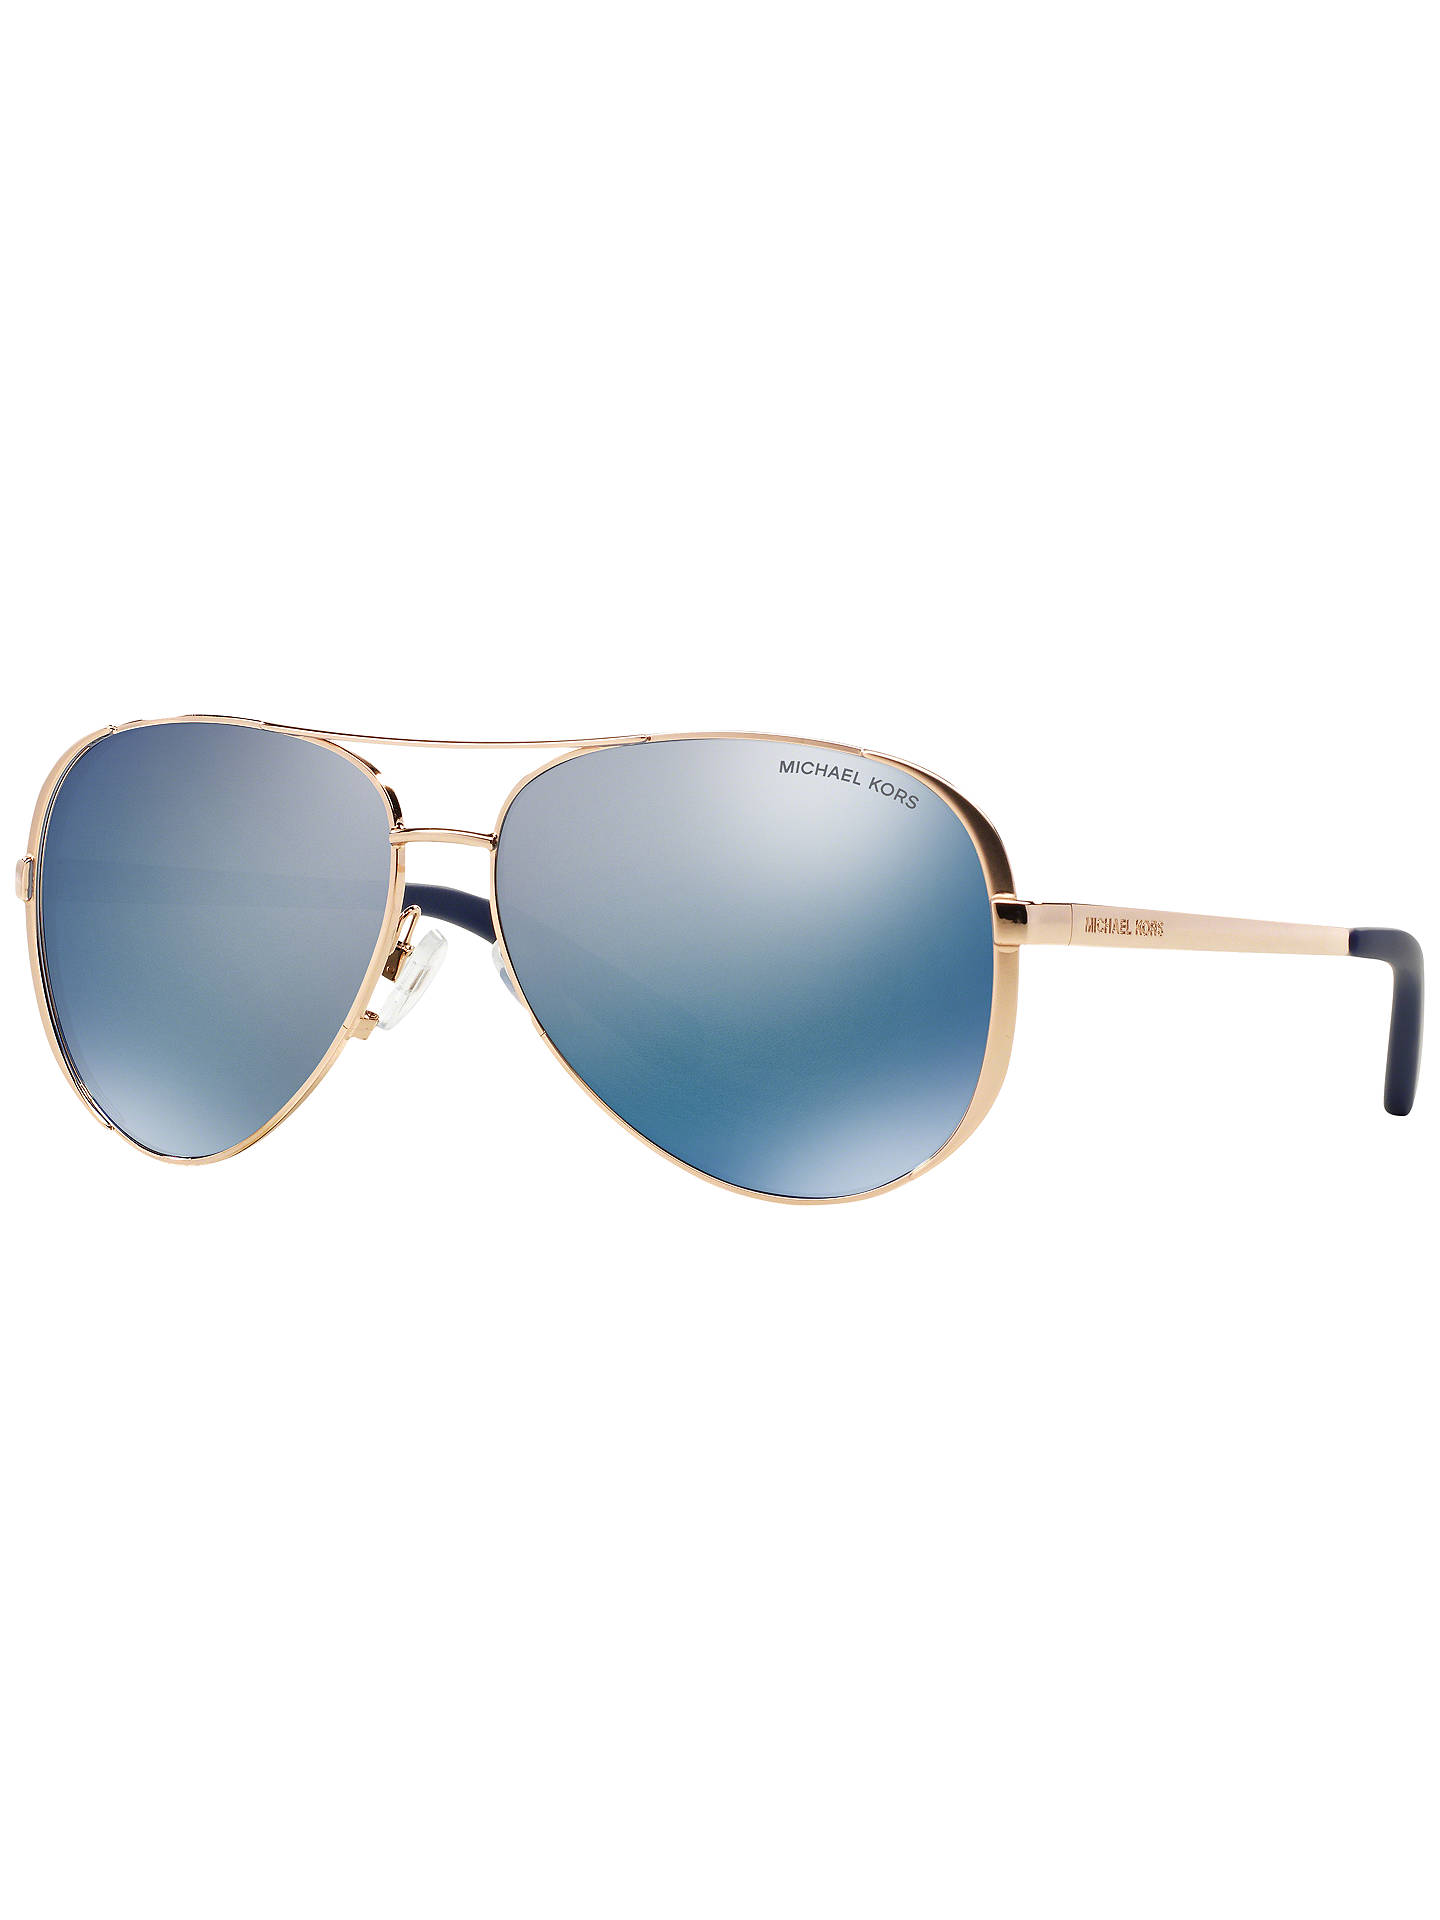 0d12e97b9a2 Michael Kors MK5004 Chelsea Polarised Aviator Sunglasses at John ...